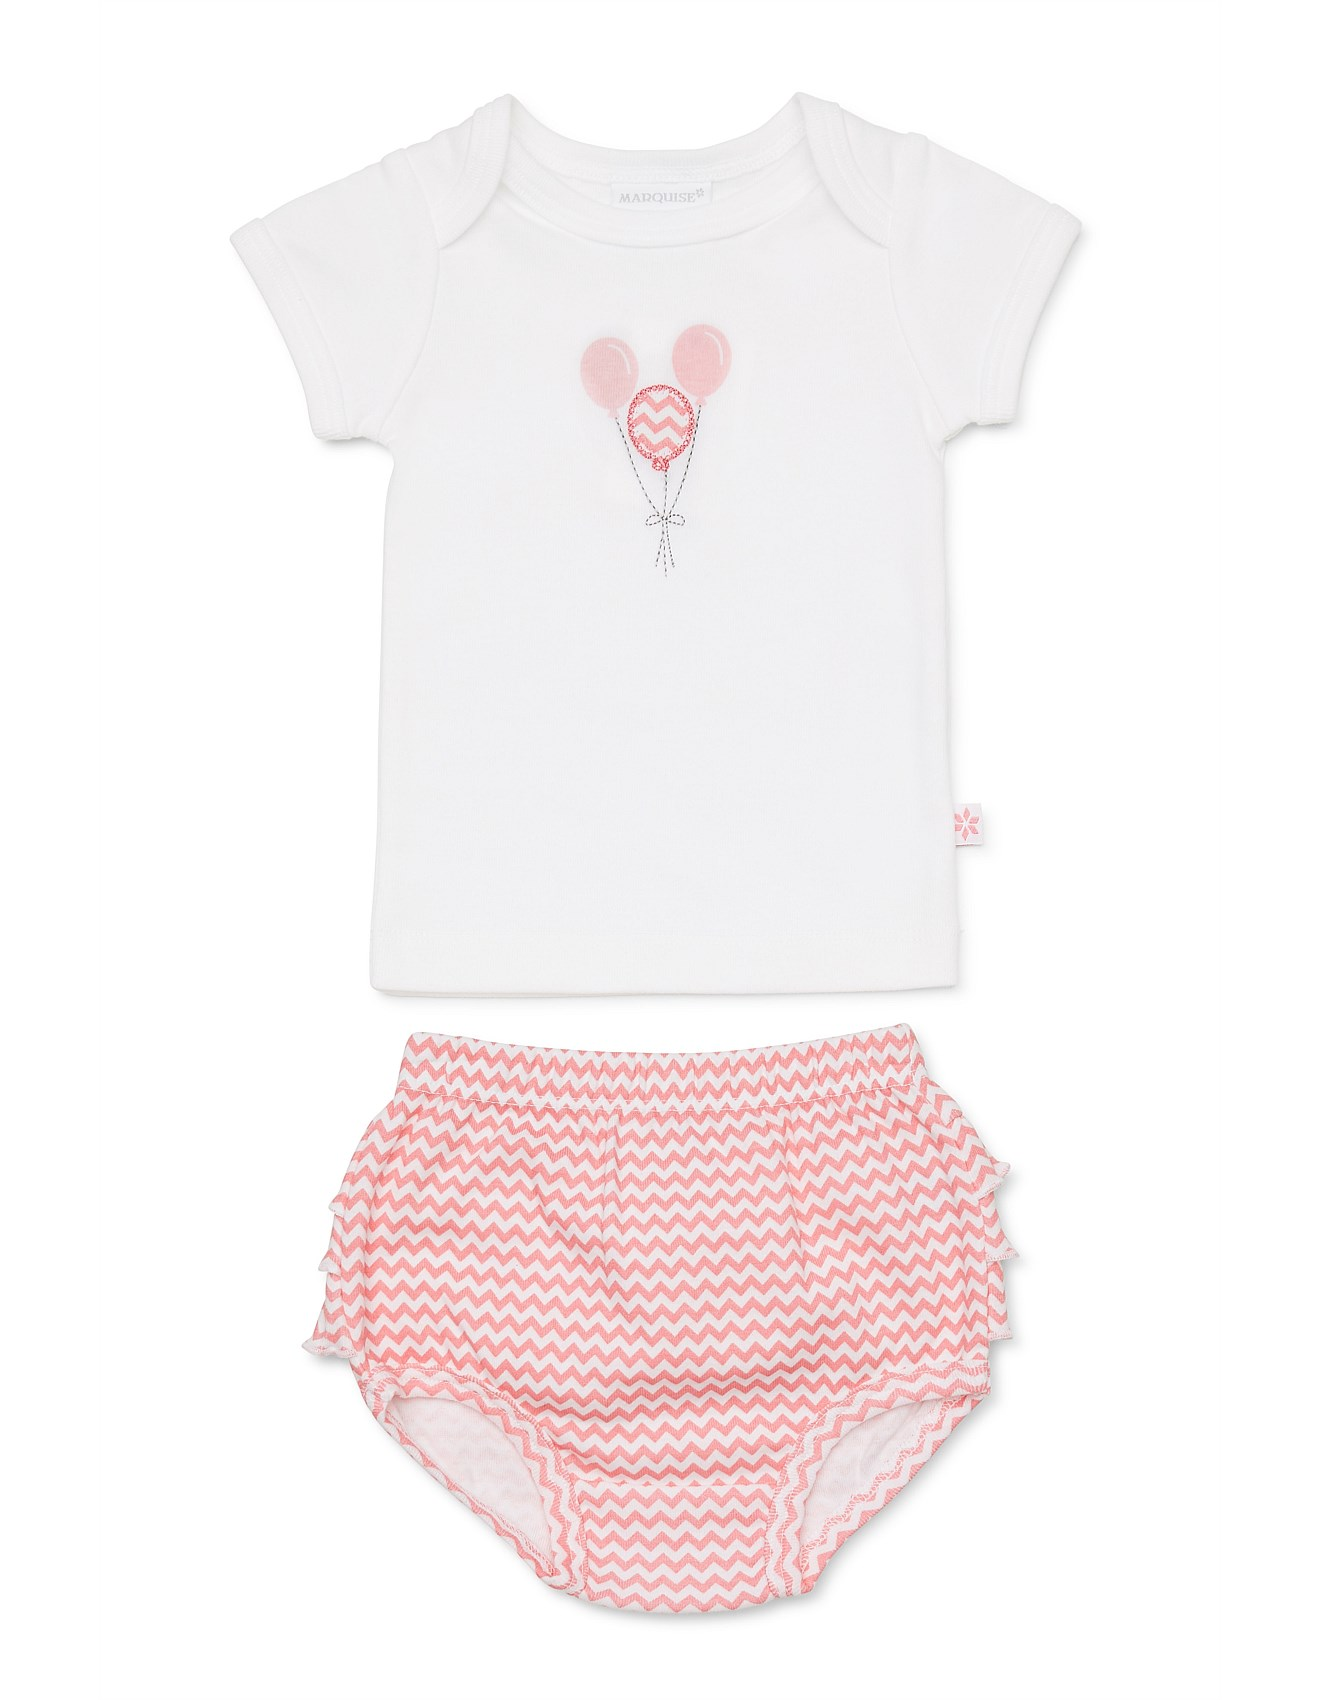 0a3b1baa1 Baby Clothing | Baby Boy & Baby Girl Clothes | David Jones - Essentials  Balloon Tshirt & Bloomer Set(Newborn-1Year)